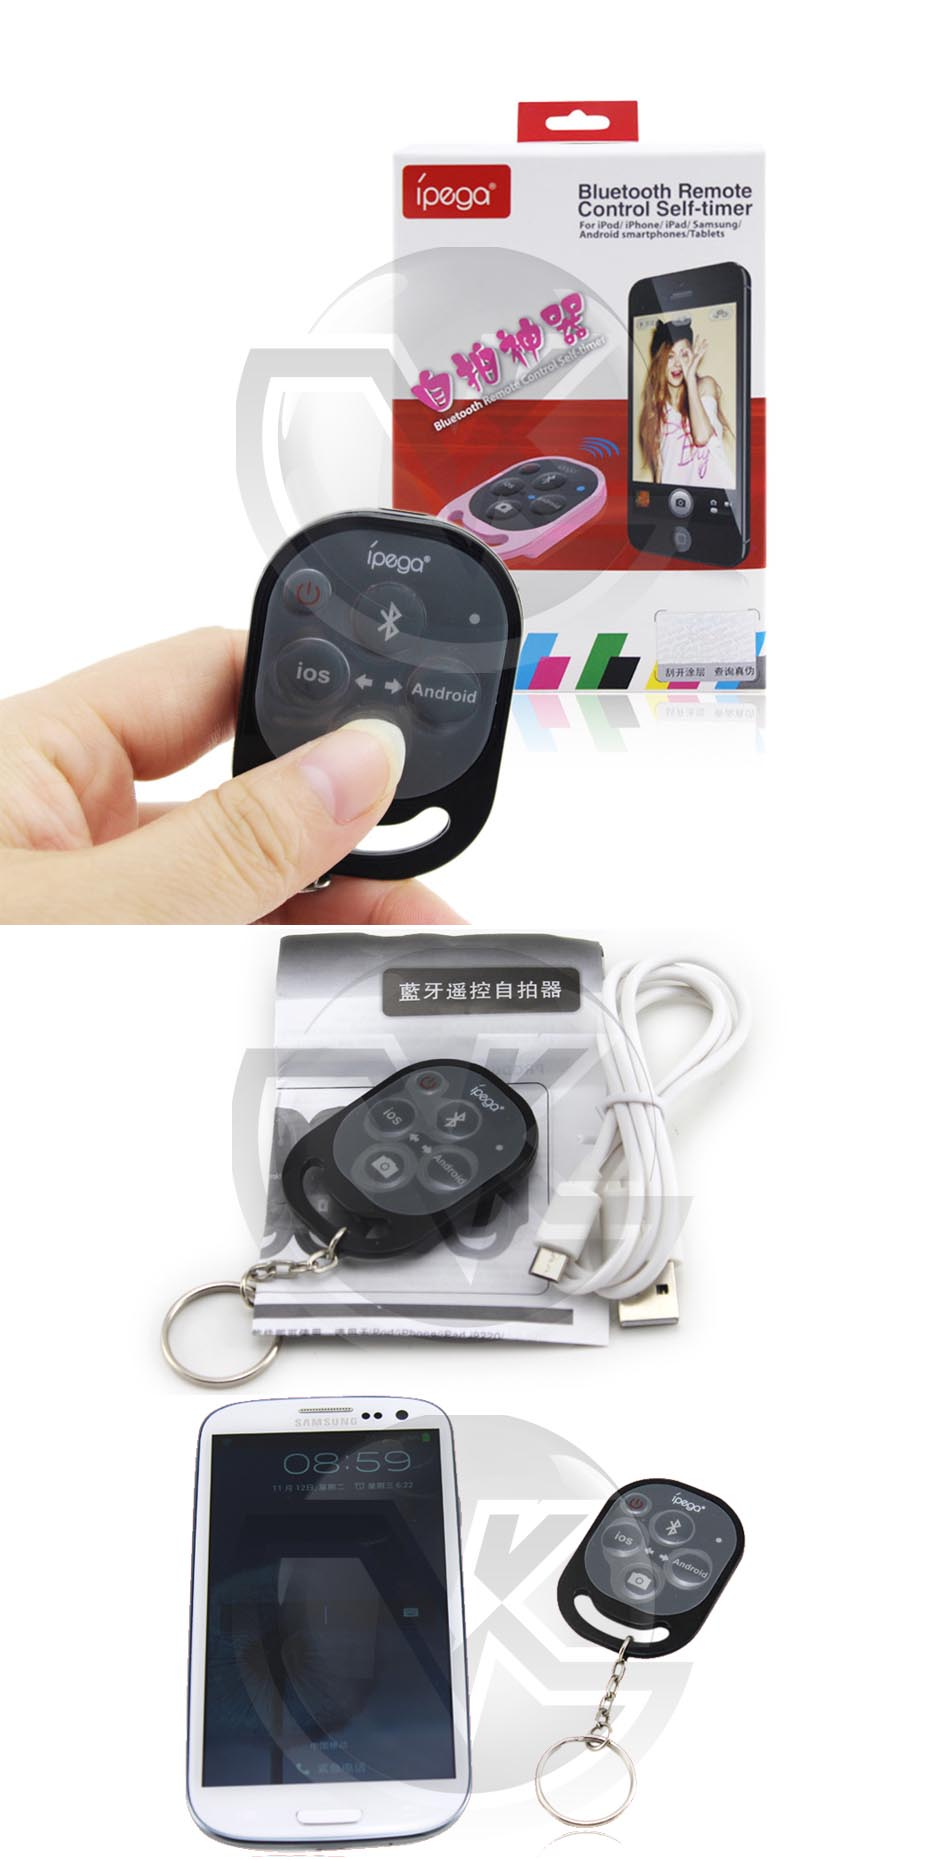 Self Potrait Bluetooth Remote PG-9019 Overview